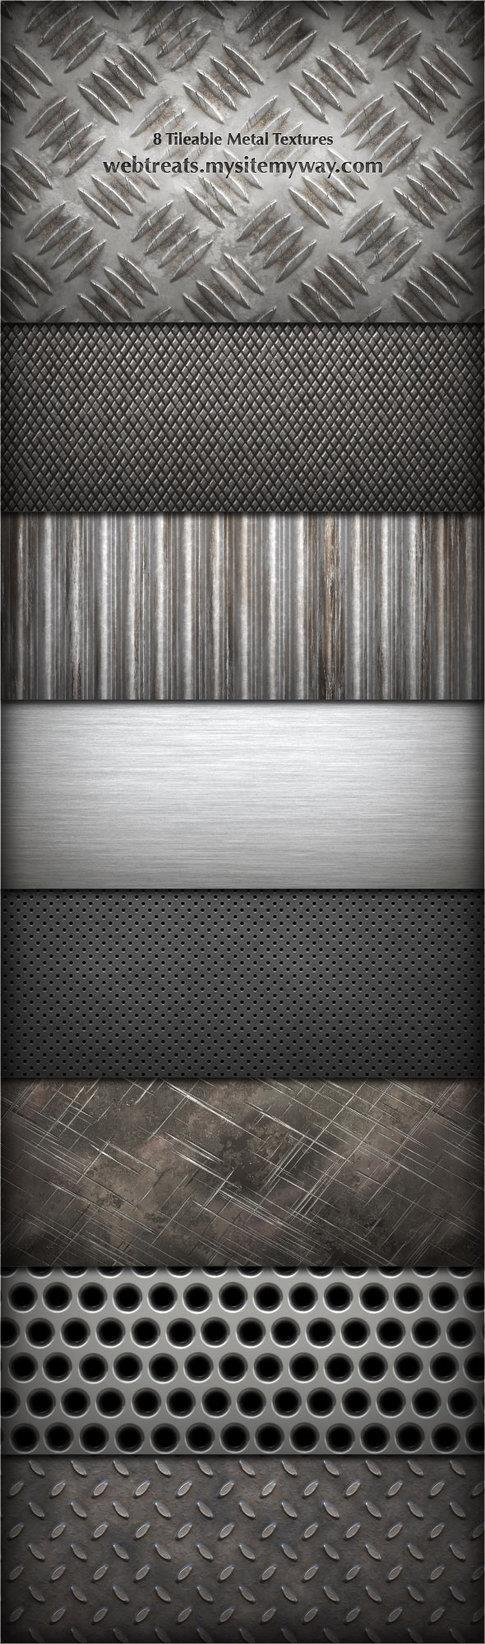 8 Tileable Metal Textures Pack